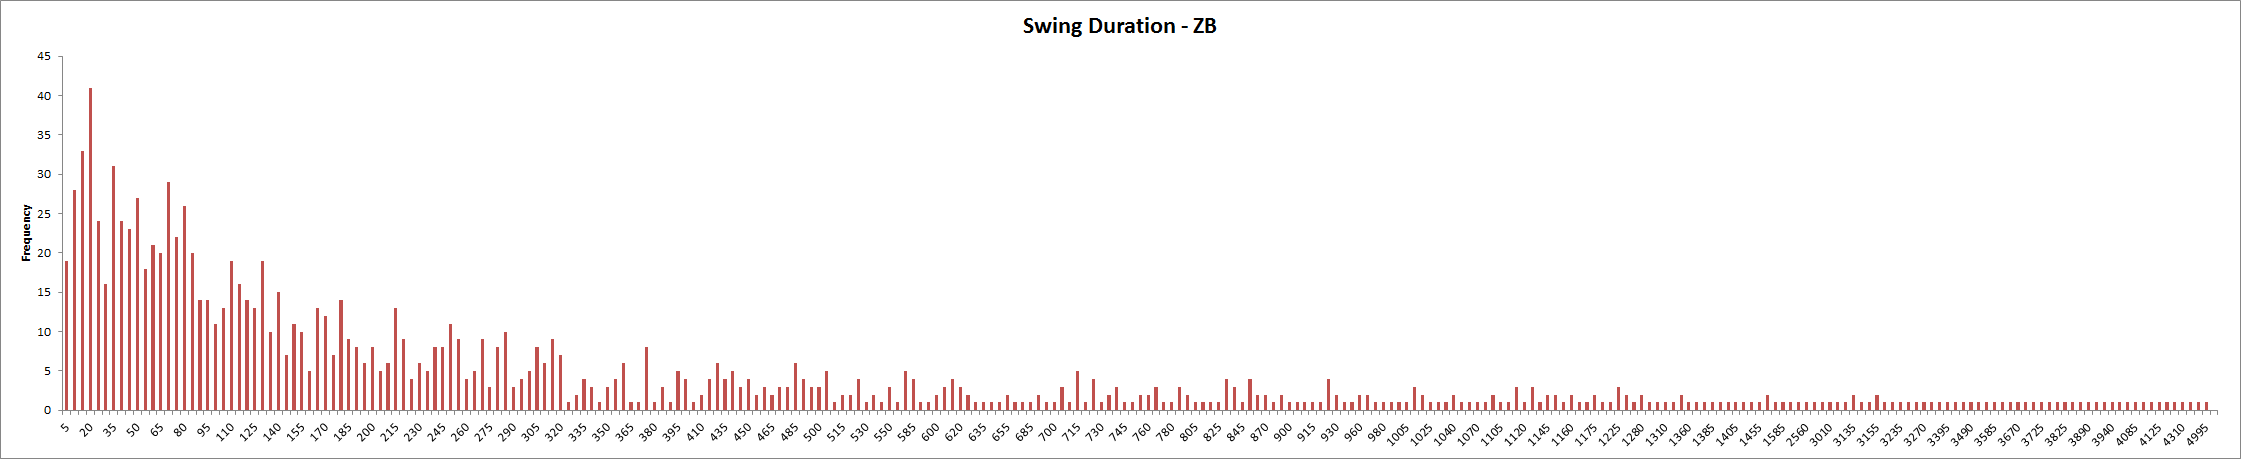 Swing Duration - ZB